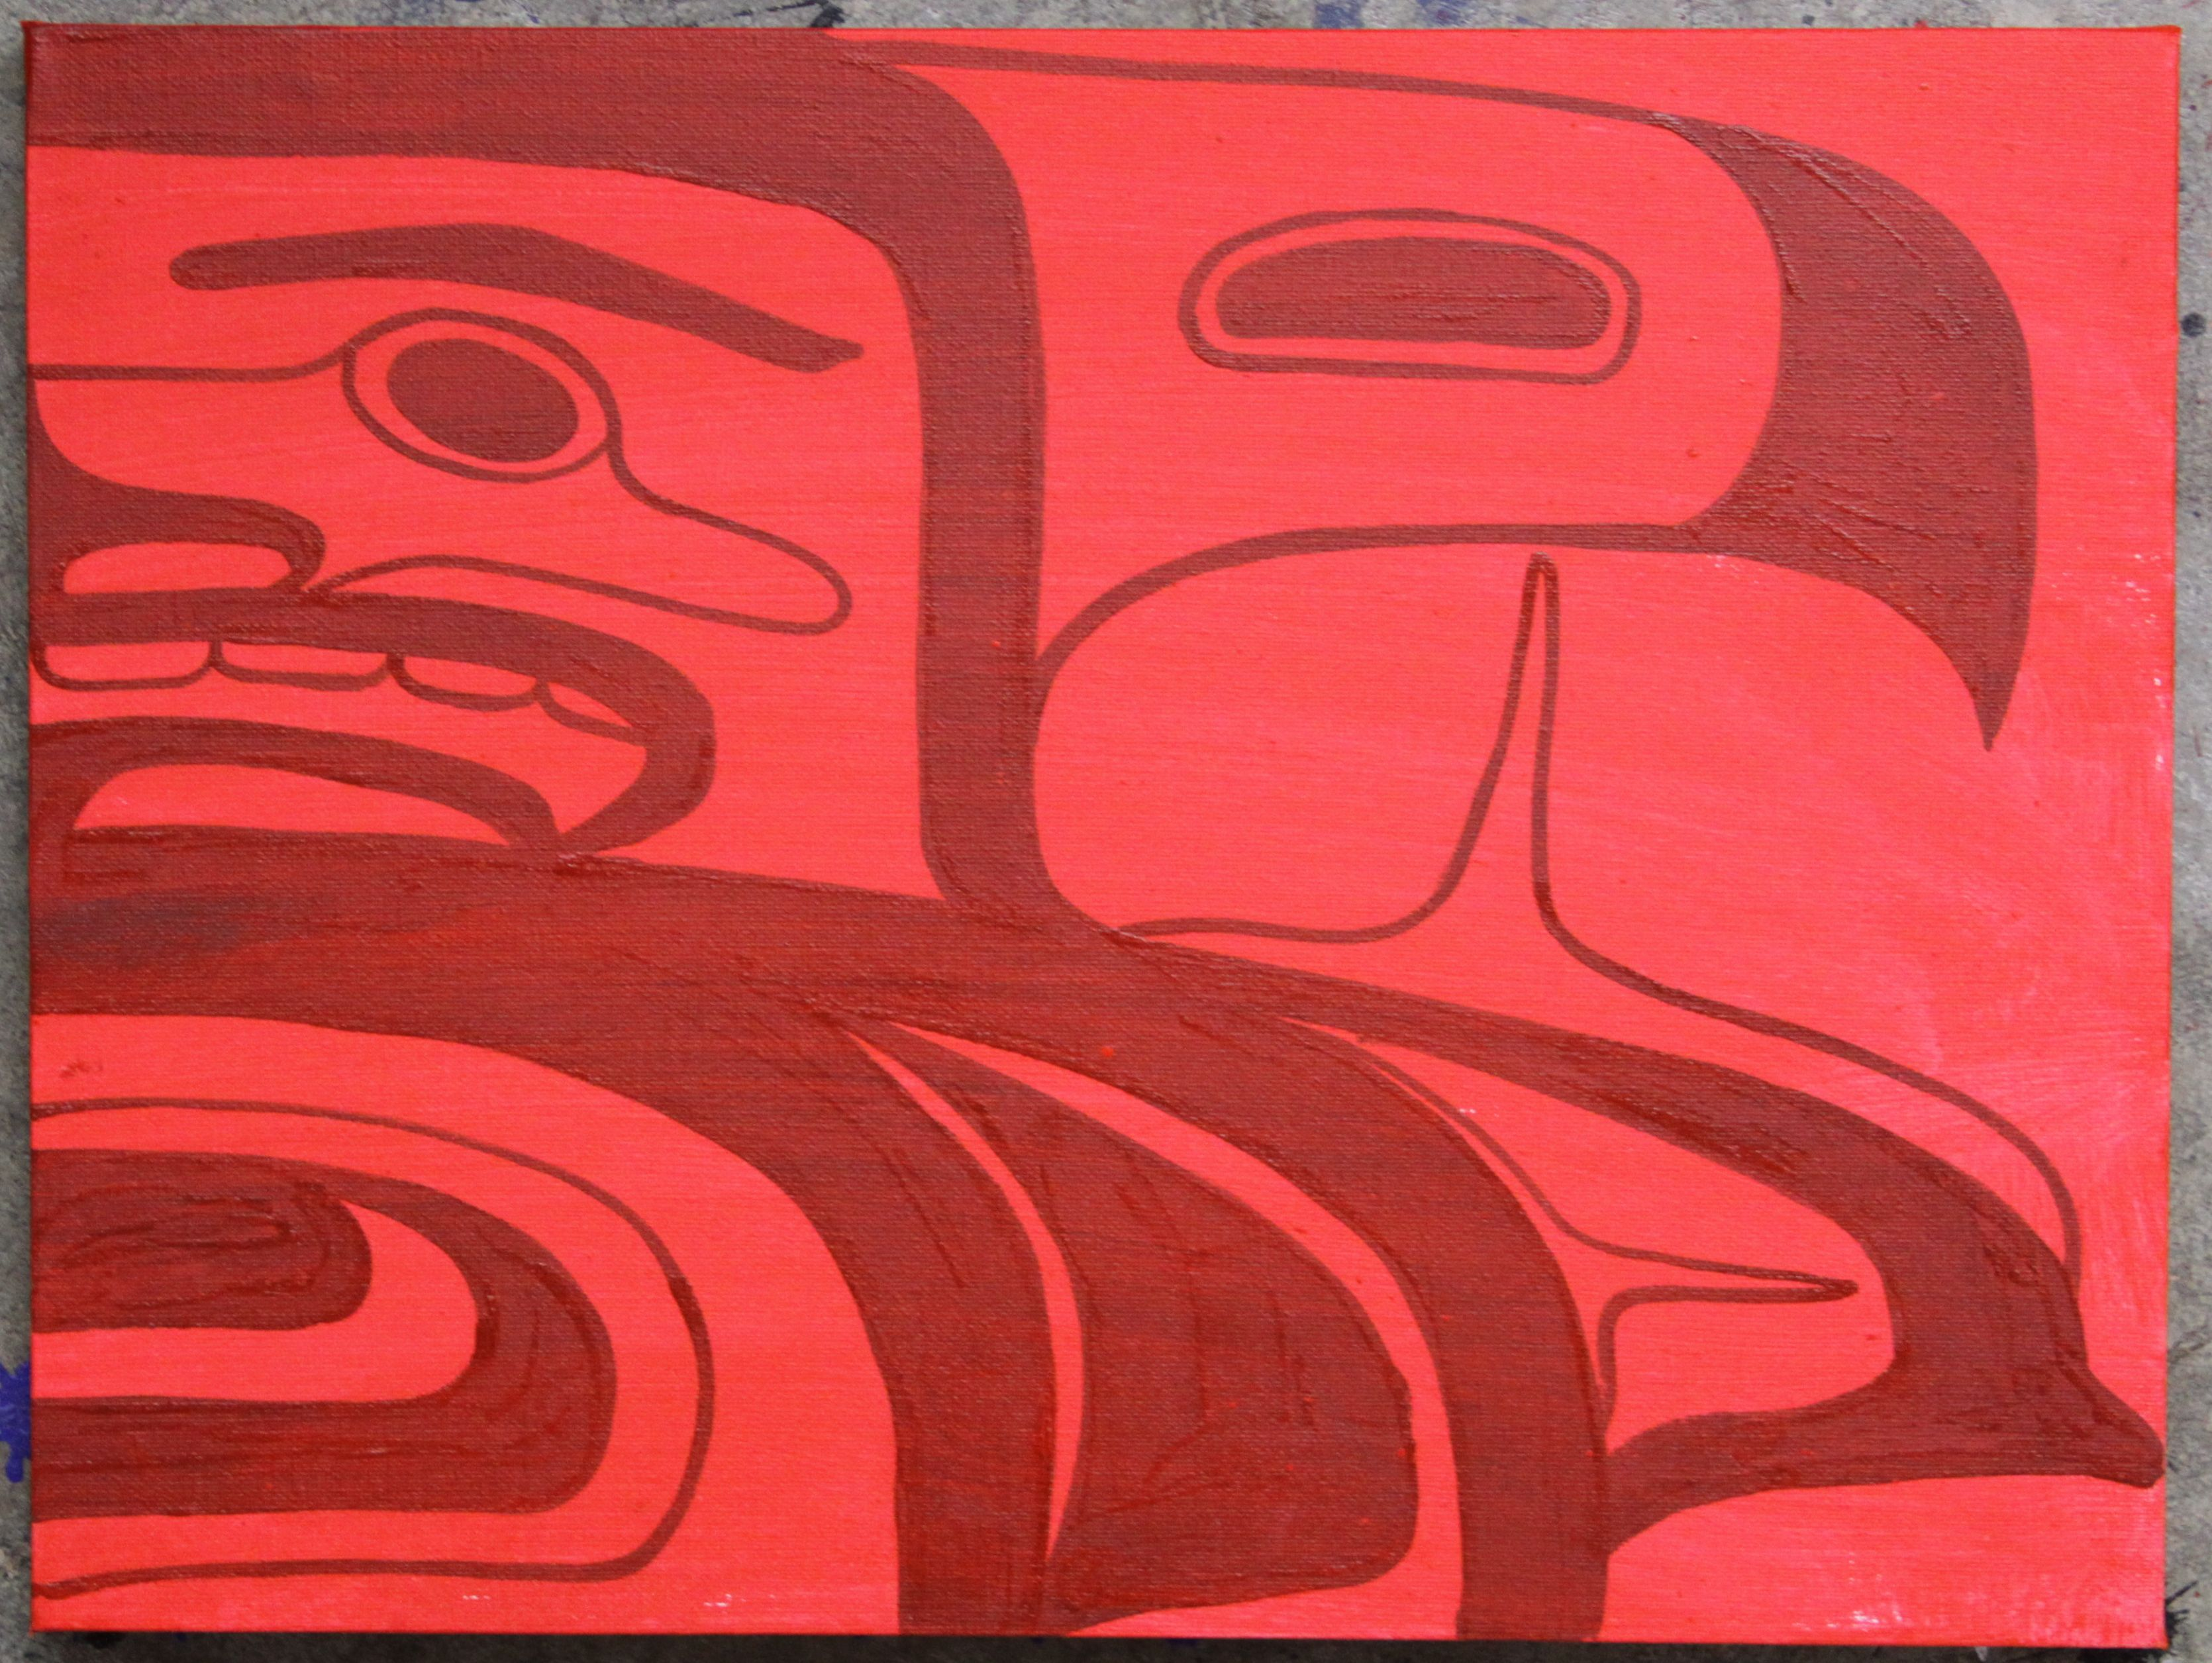 """Eagles Dance Original Painting   12""""x16""""   Acrylic on Canvas   Private Collection Vancouver, BC   September 2012"""